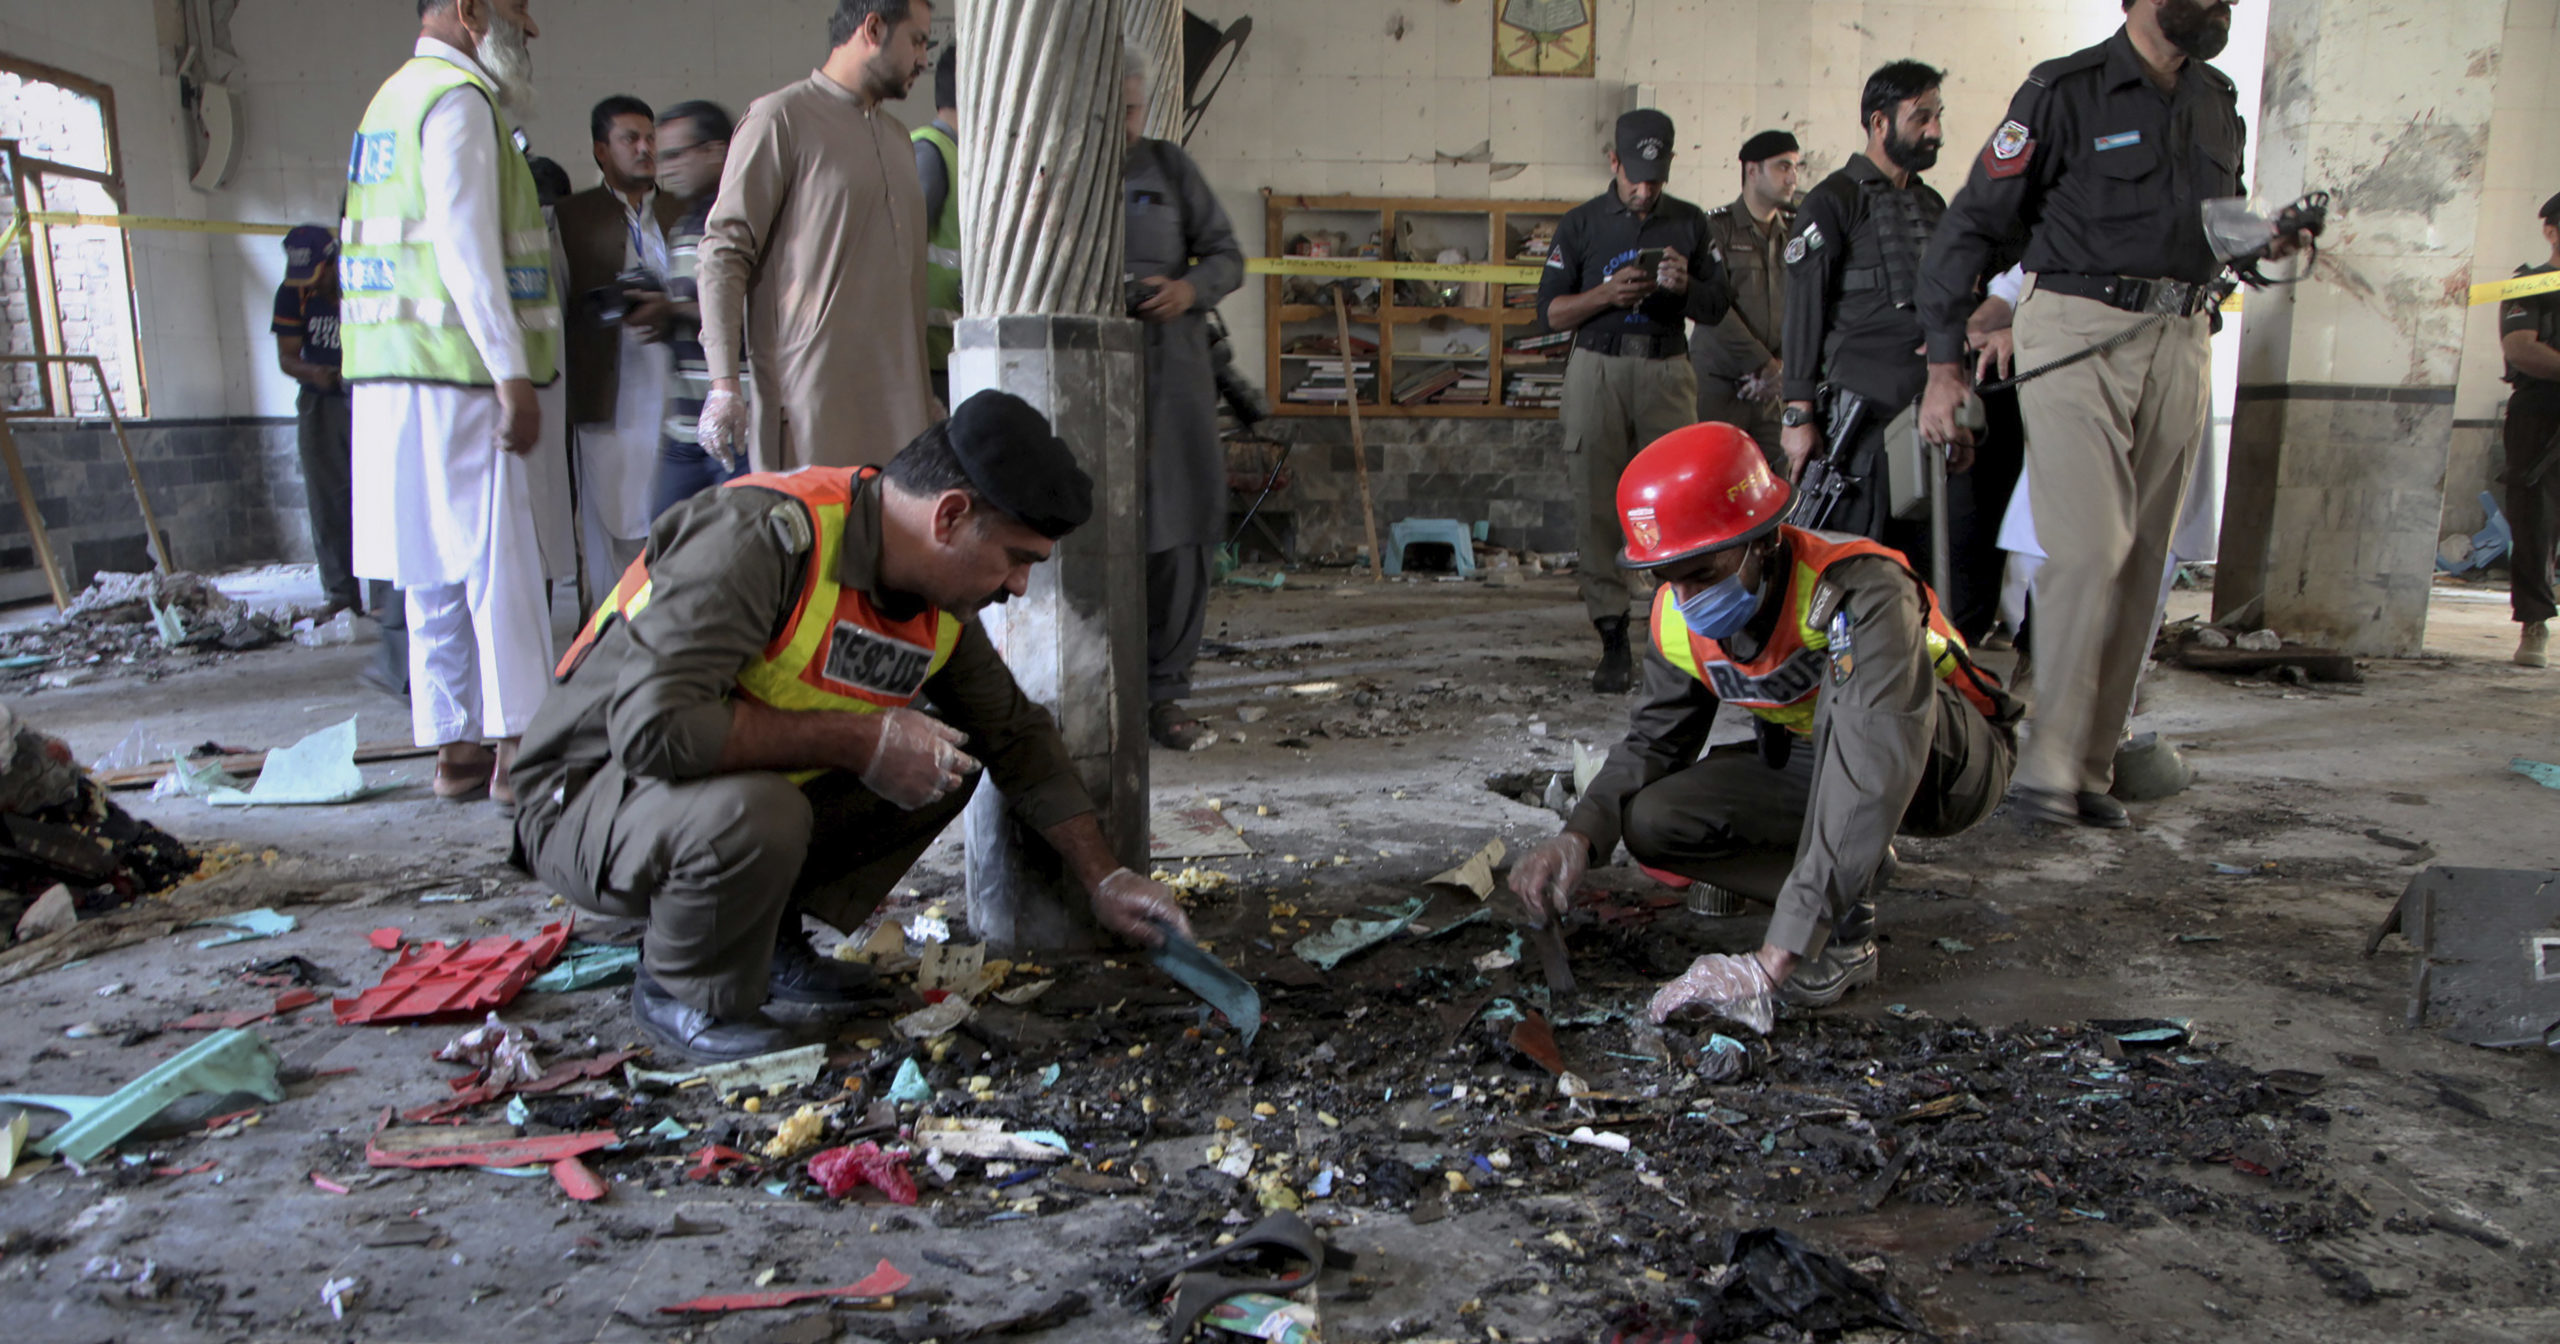 Rescue workers and police officers examine the site of a bomb explosion in an Islamic school in Peshawar, Pakistan, on Oct. 27, 2020.